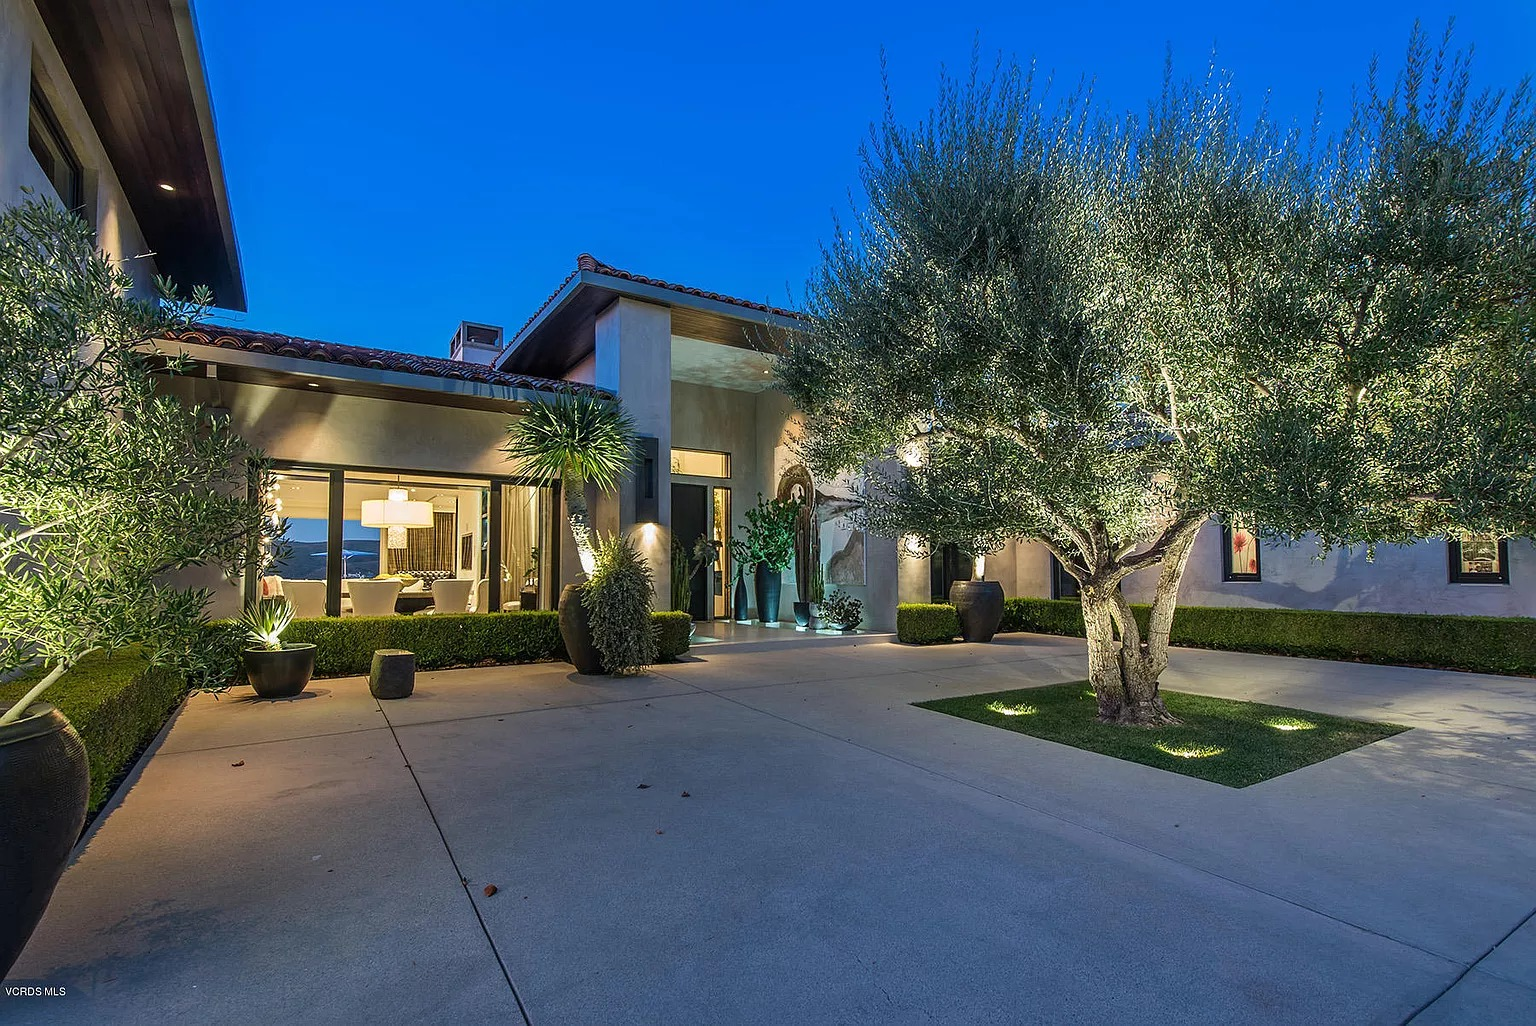 4455 Sunnyhill St, Westlake Village, CA 91362 - $6,995,000 home for sale, house images, photos and pics gallery